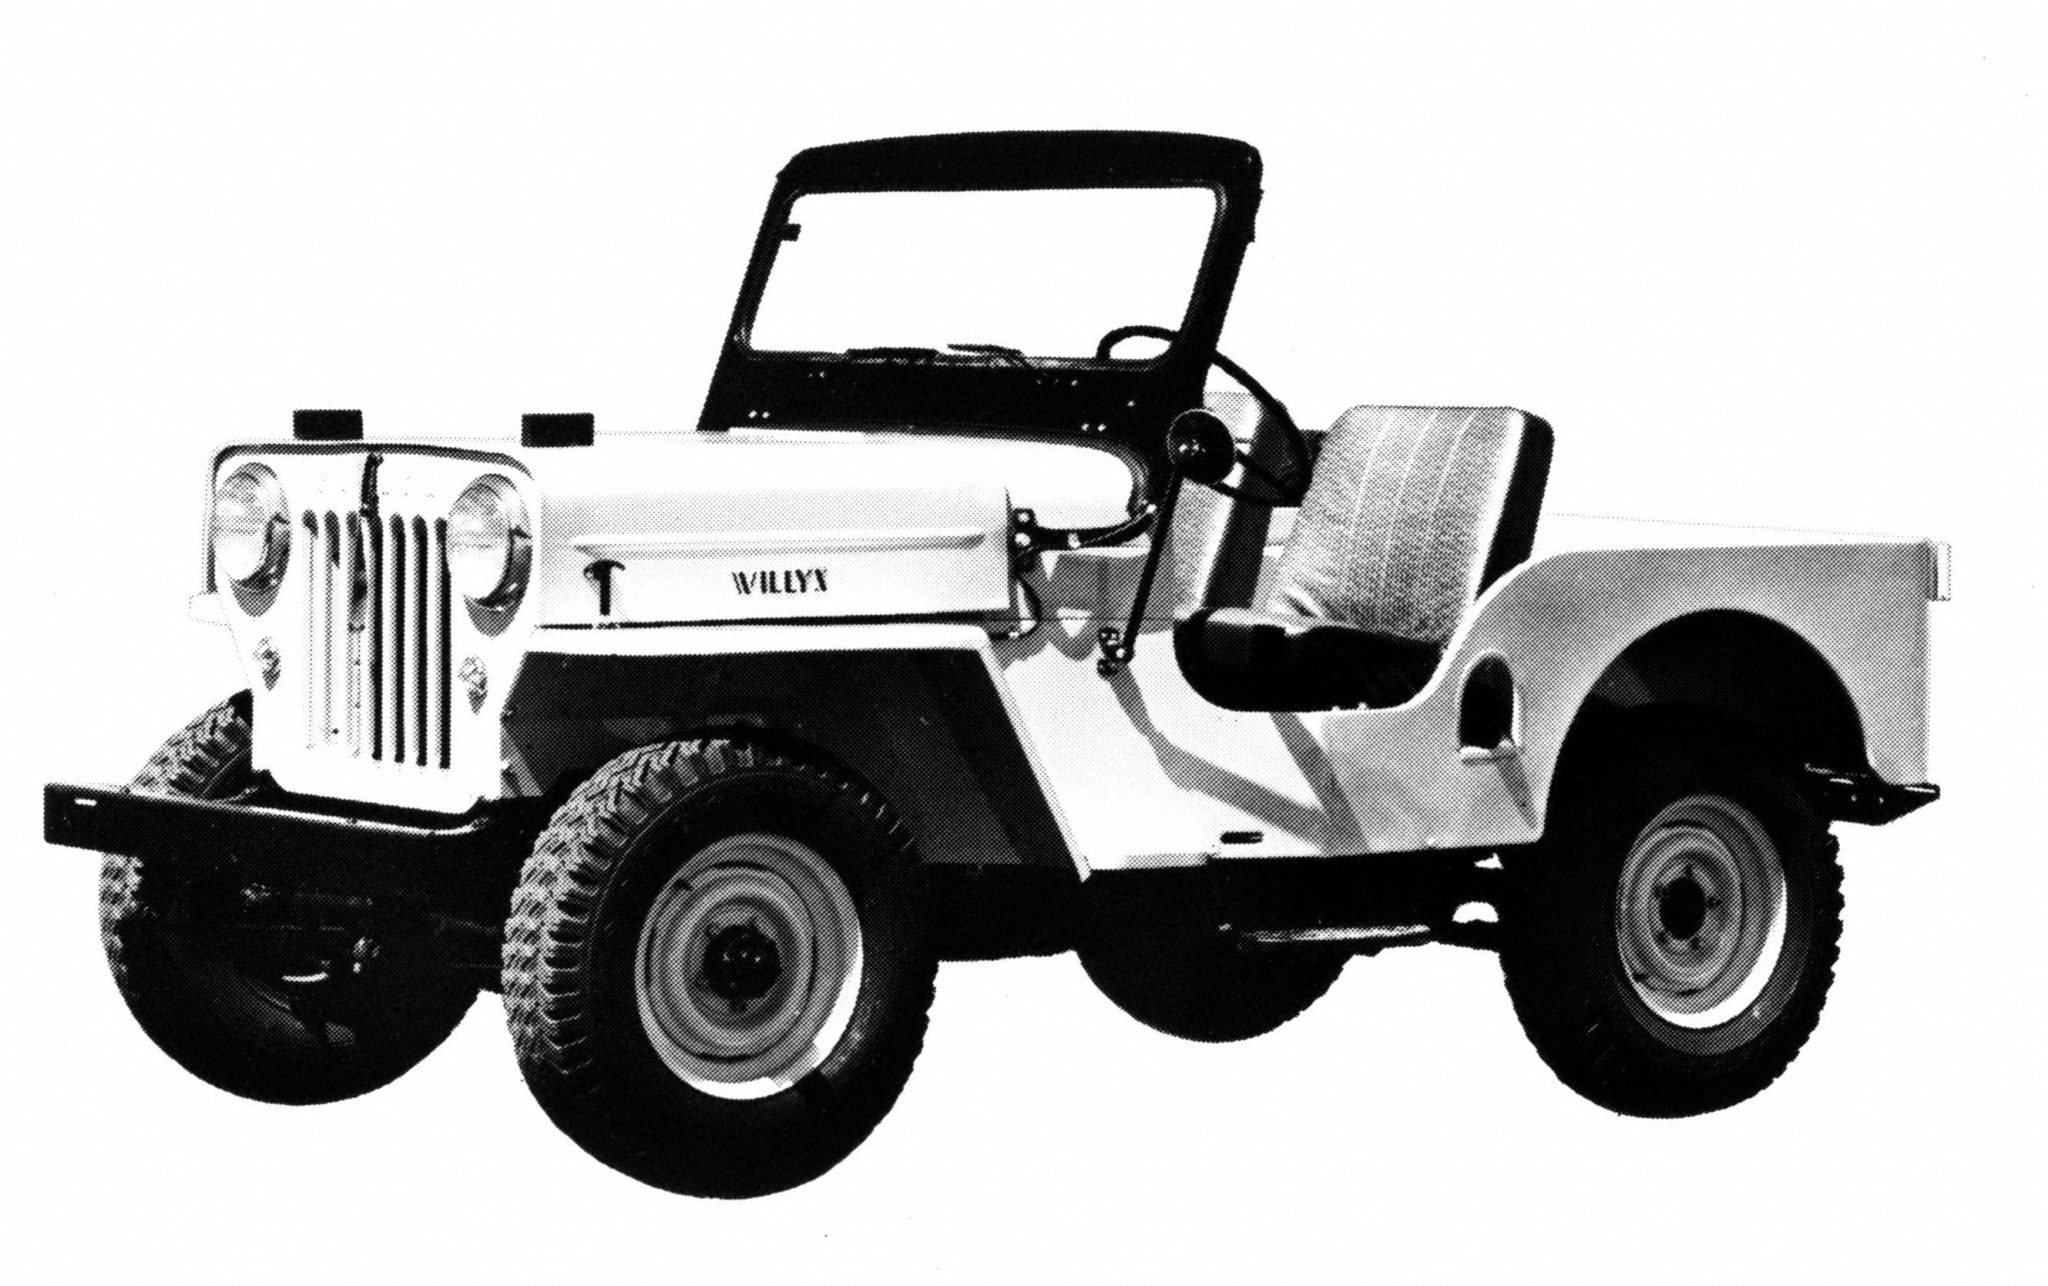 2016 jeep wrangler willys wheeler edition: like using a hatchet to